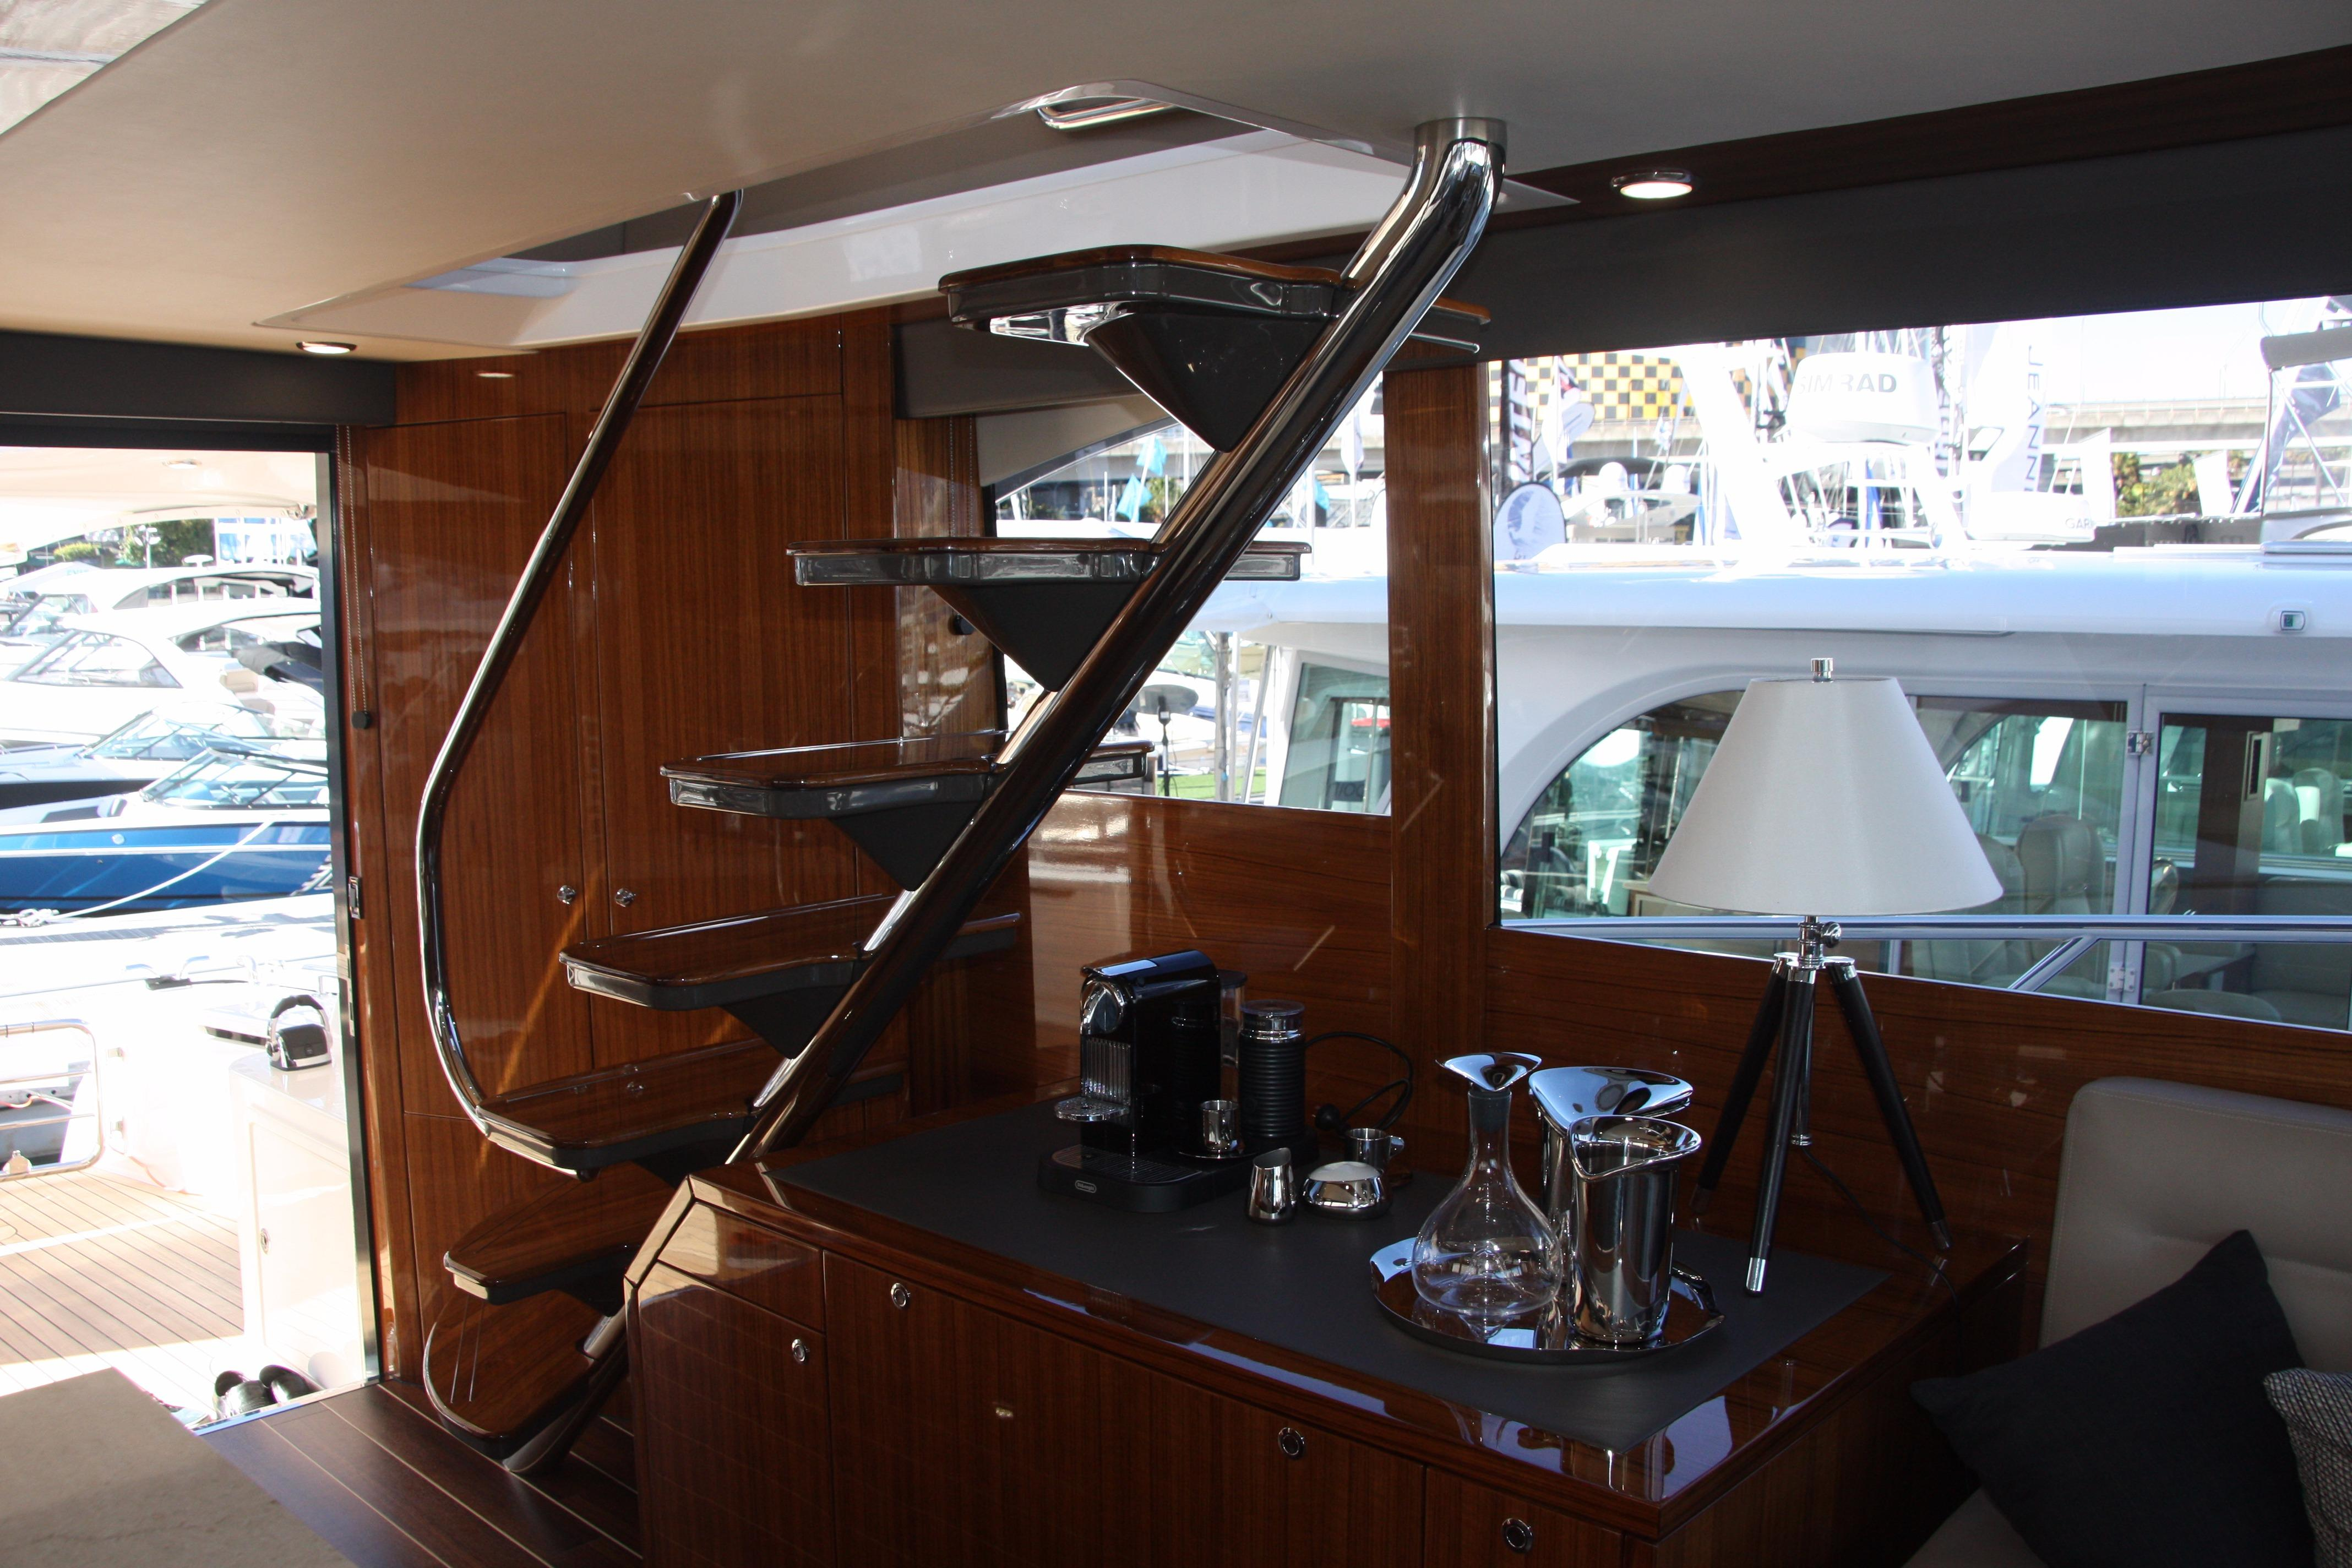 Stairway from Galley to Fully Enclosed Flybridge